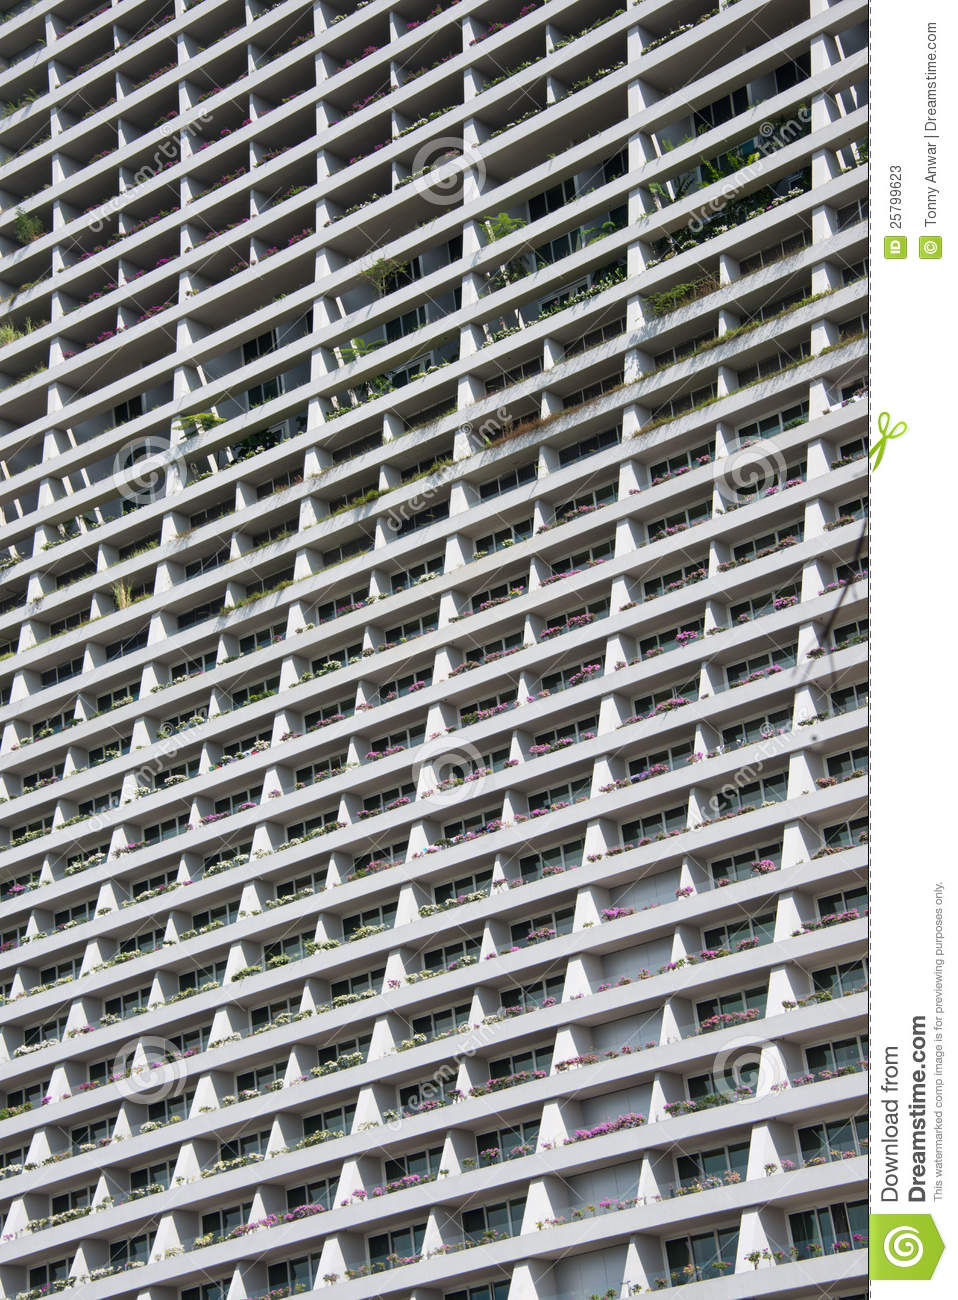 Hotel balconies stock photos image 25799623 for Hotels with balconies